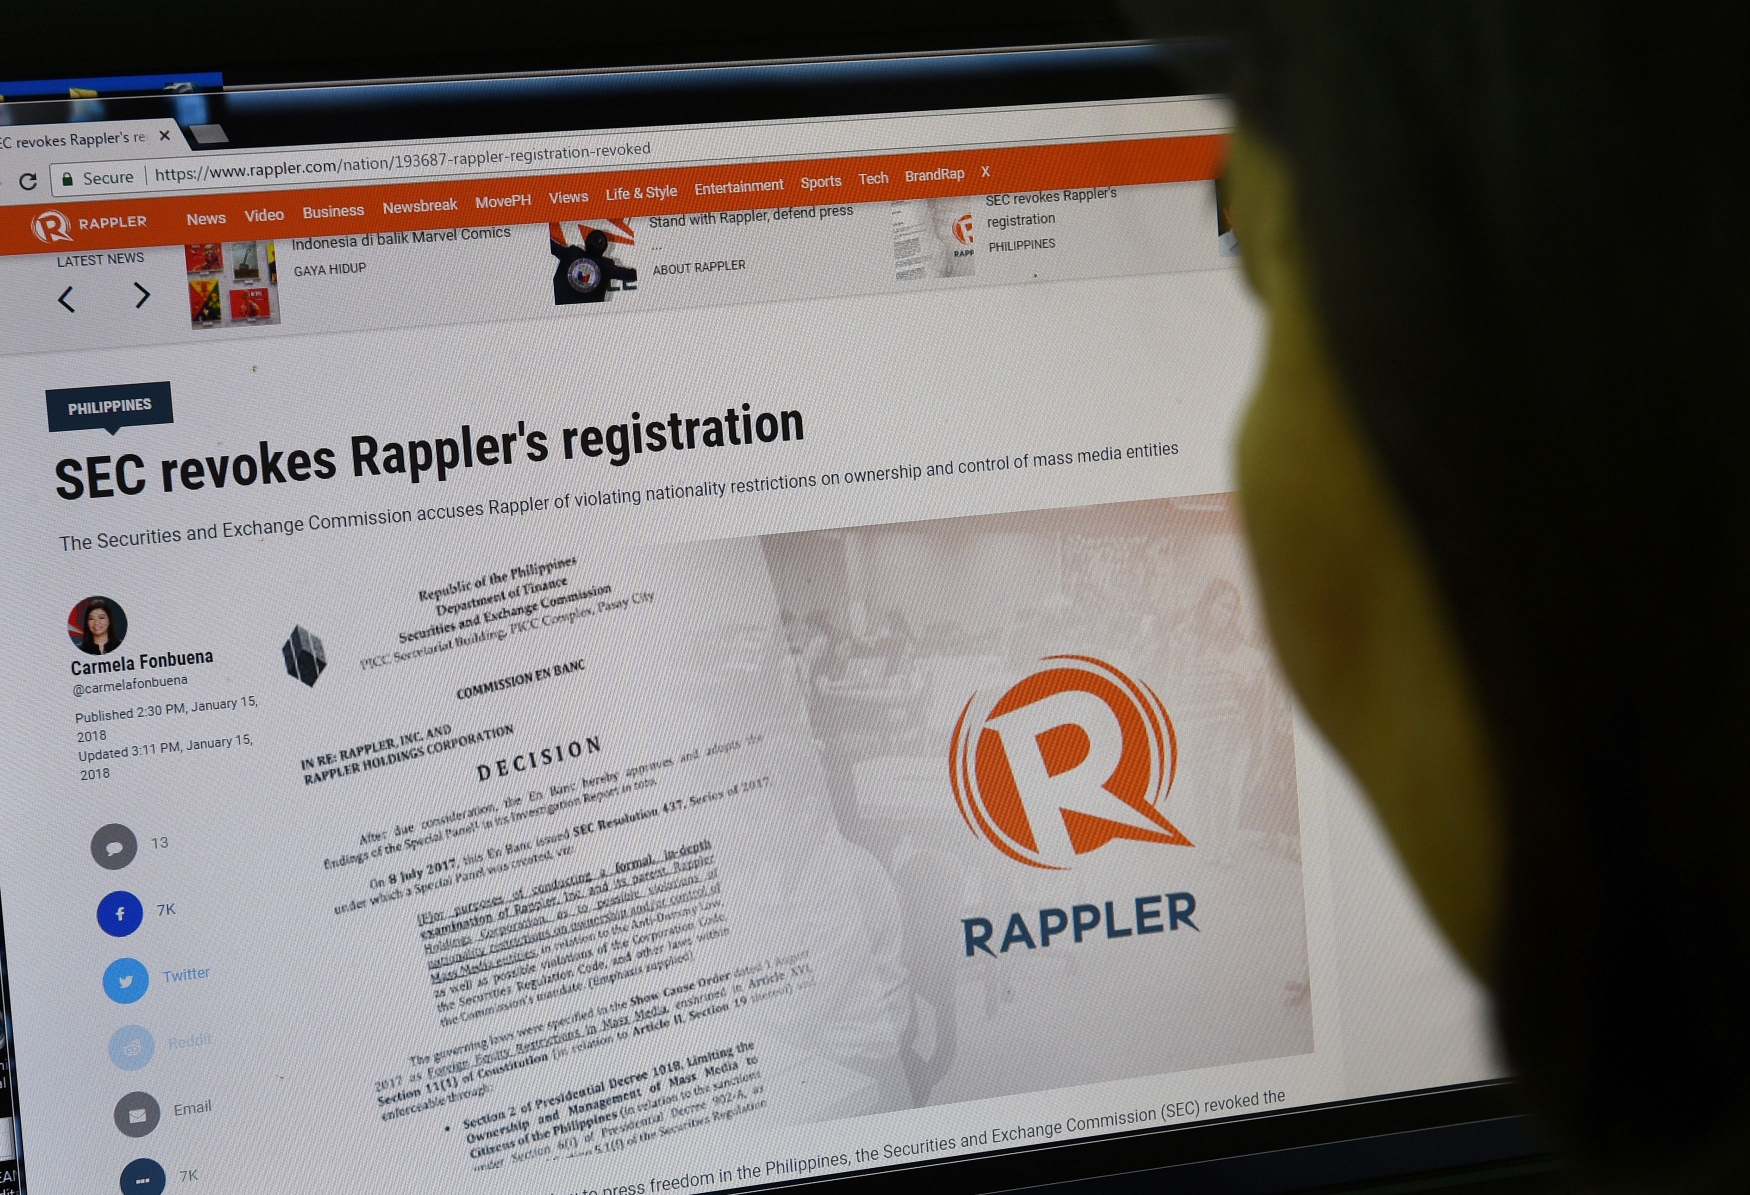 Rappler, a new media organization critical of the Philippines government, faces closure